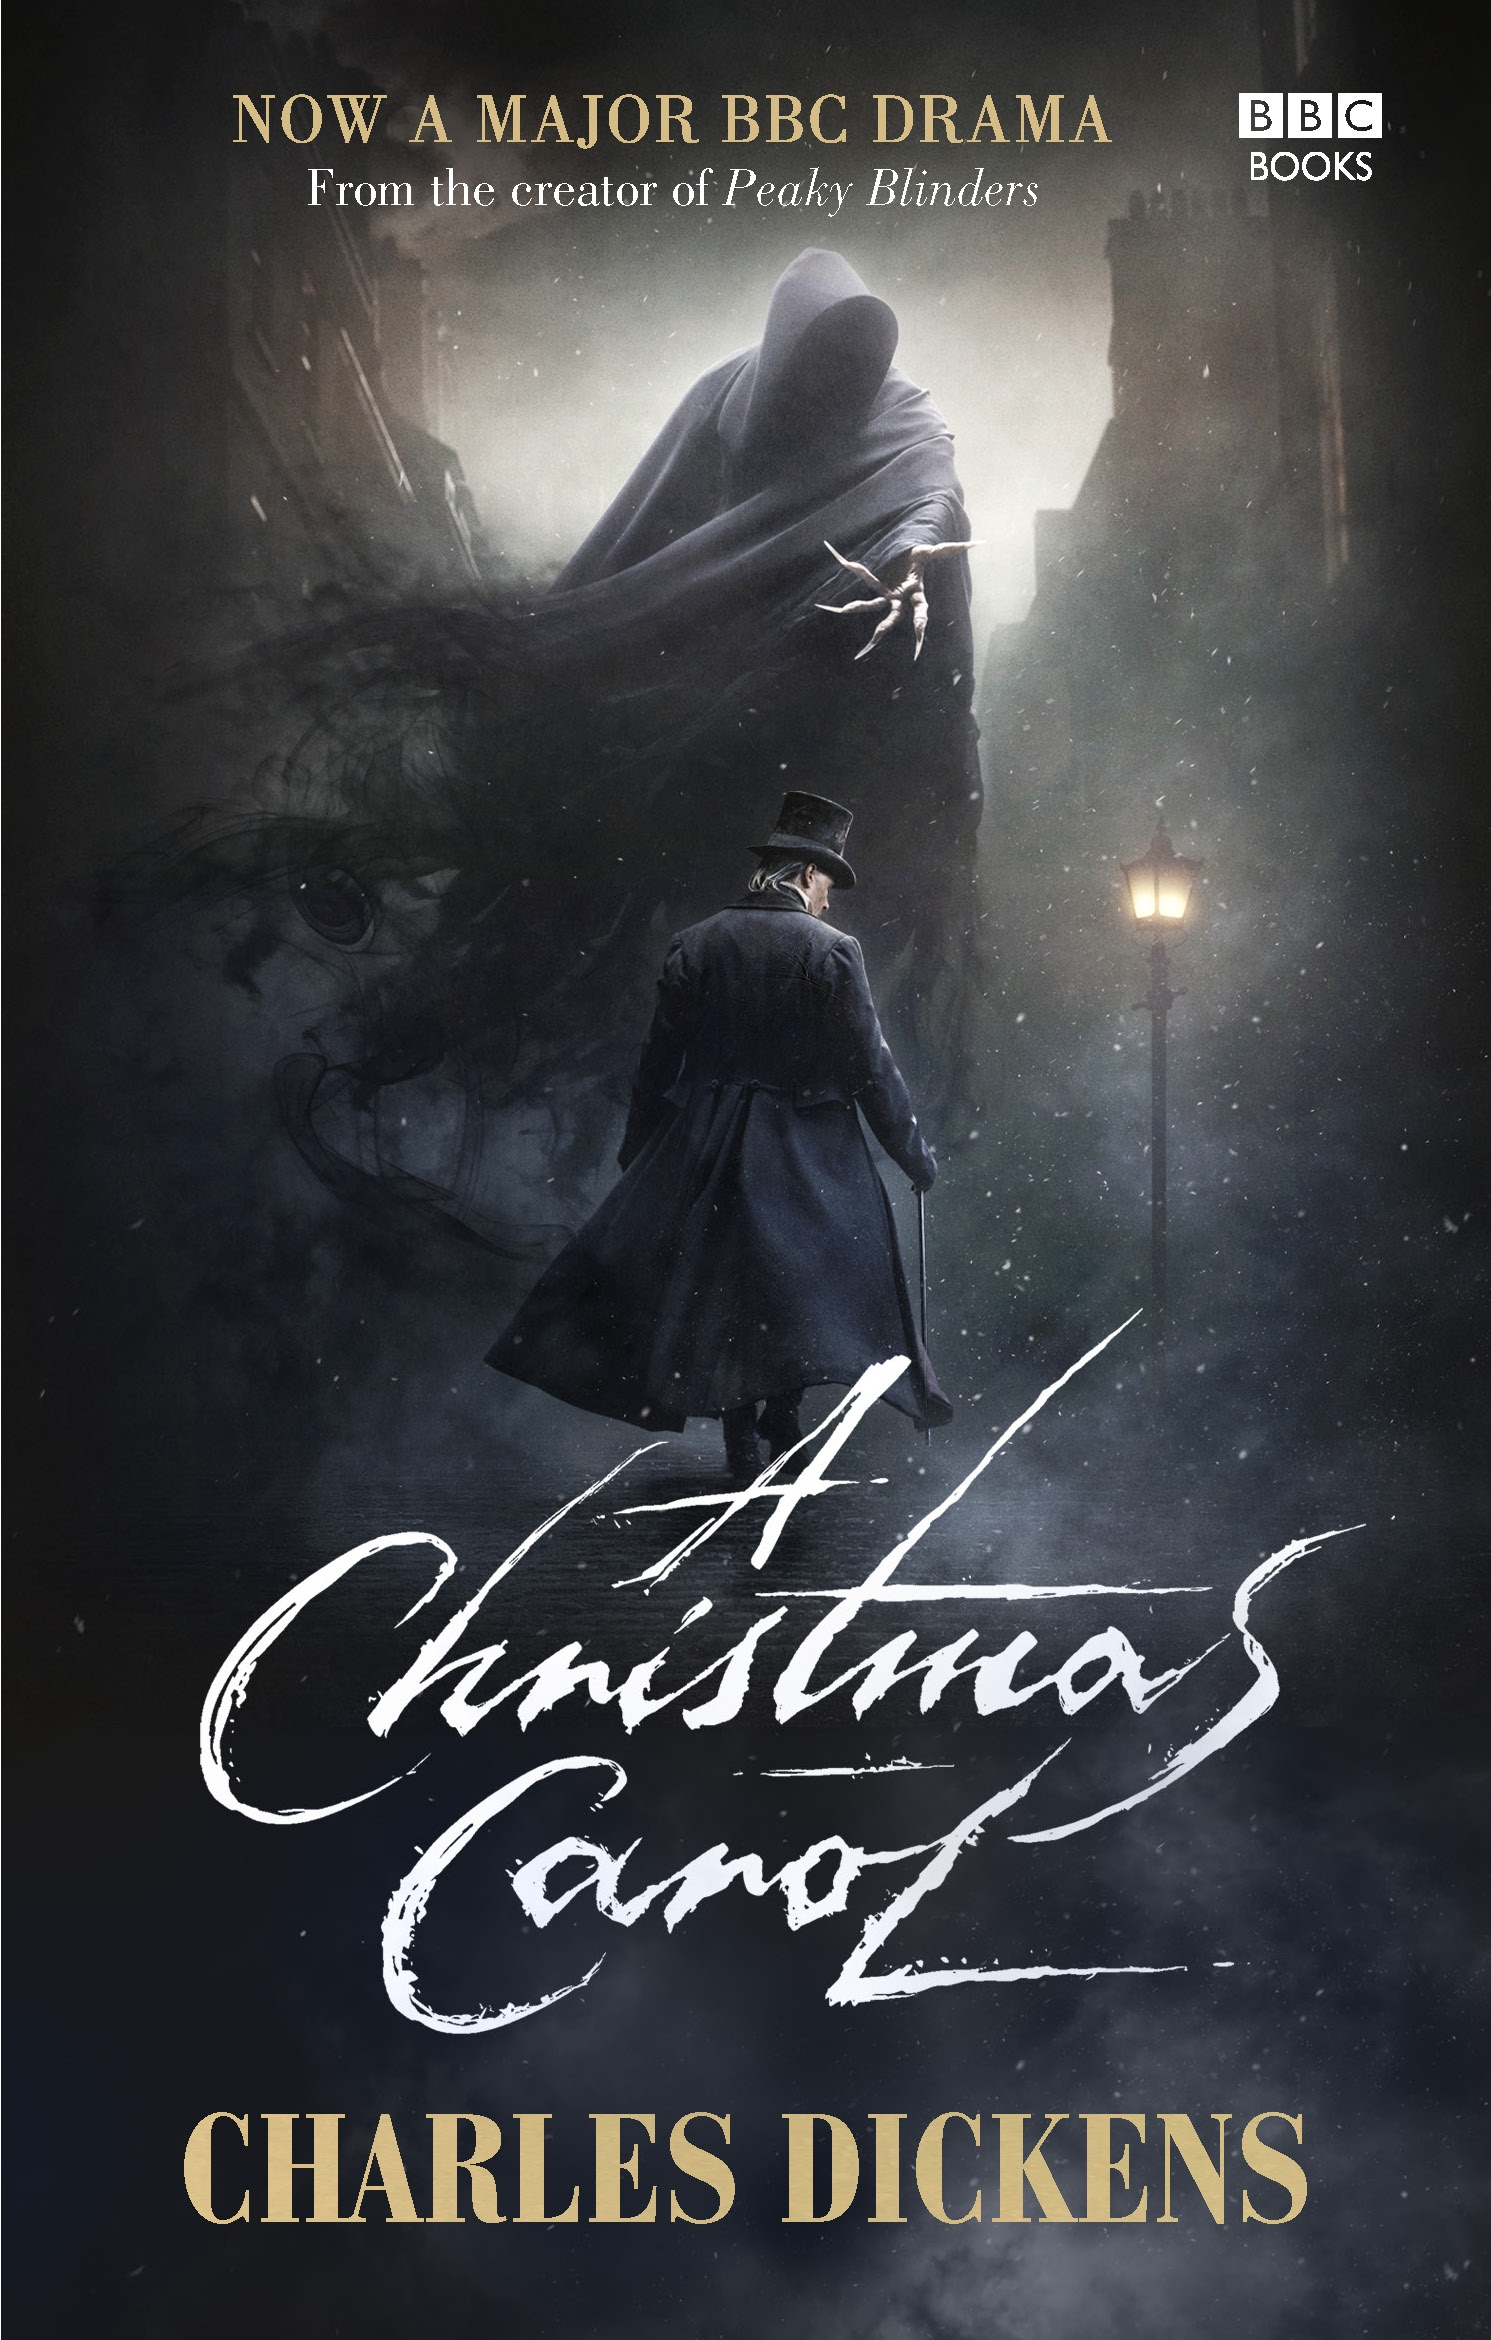 A Christmas Carol BBC TV Tie-In by Charles Dickens - Penguin Books Australia